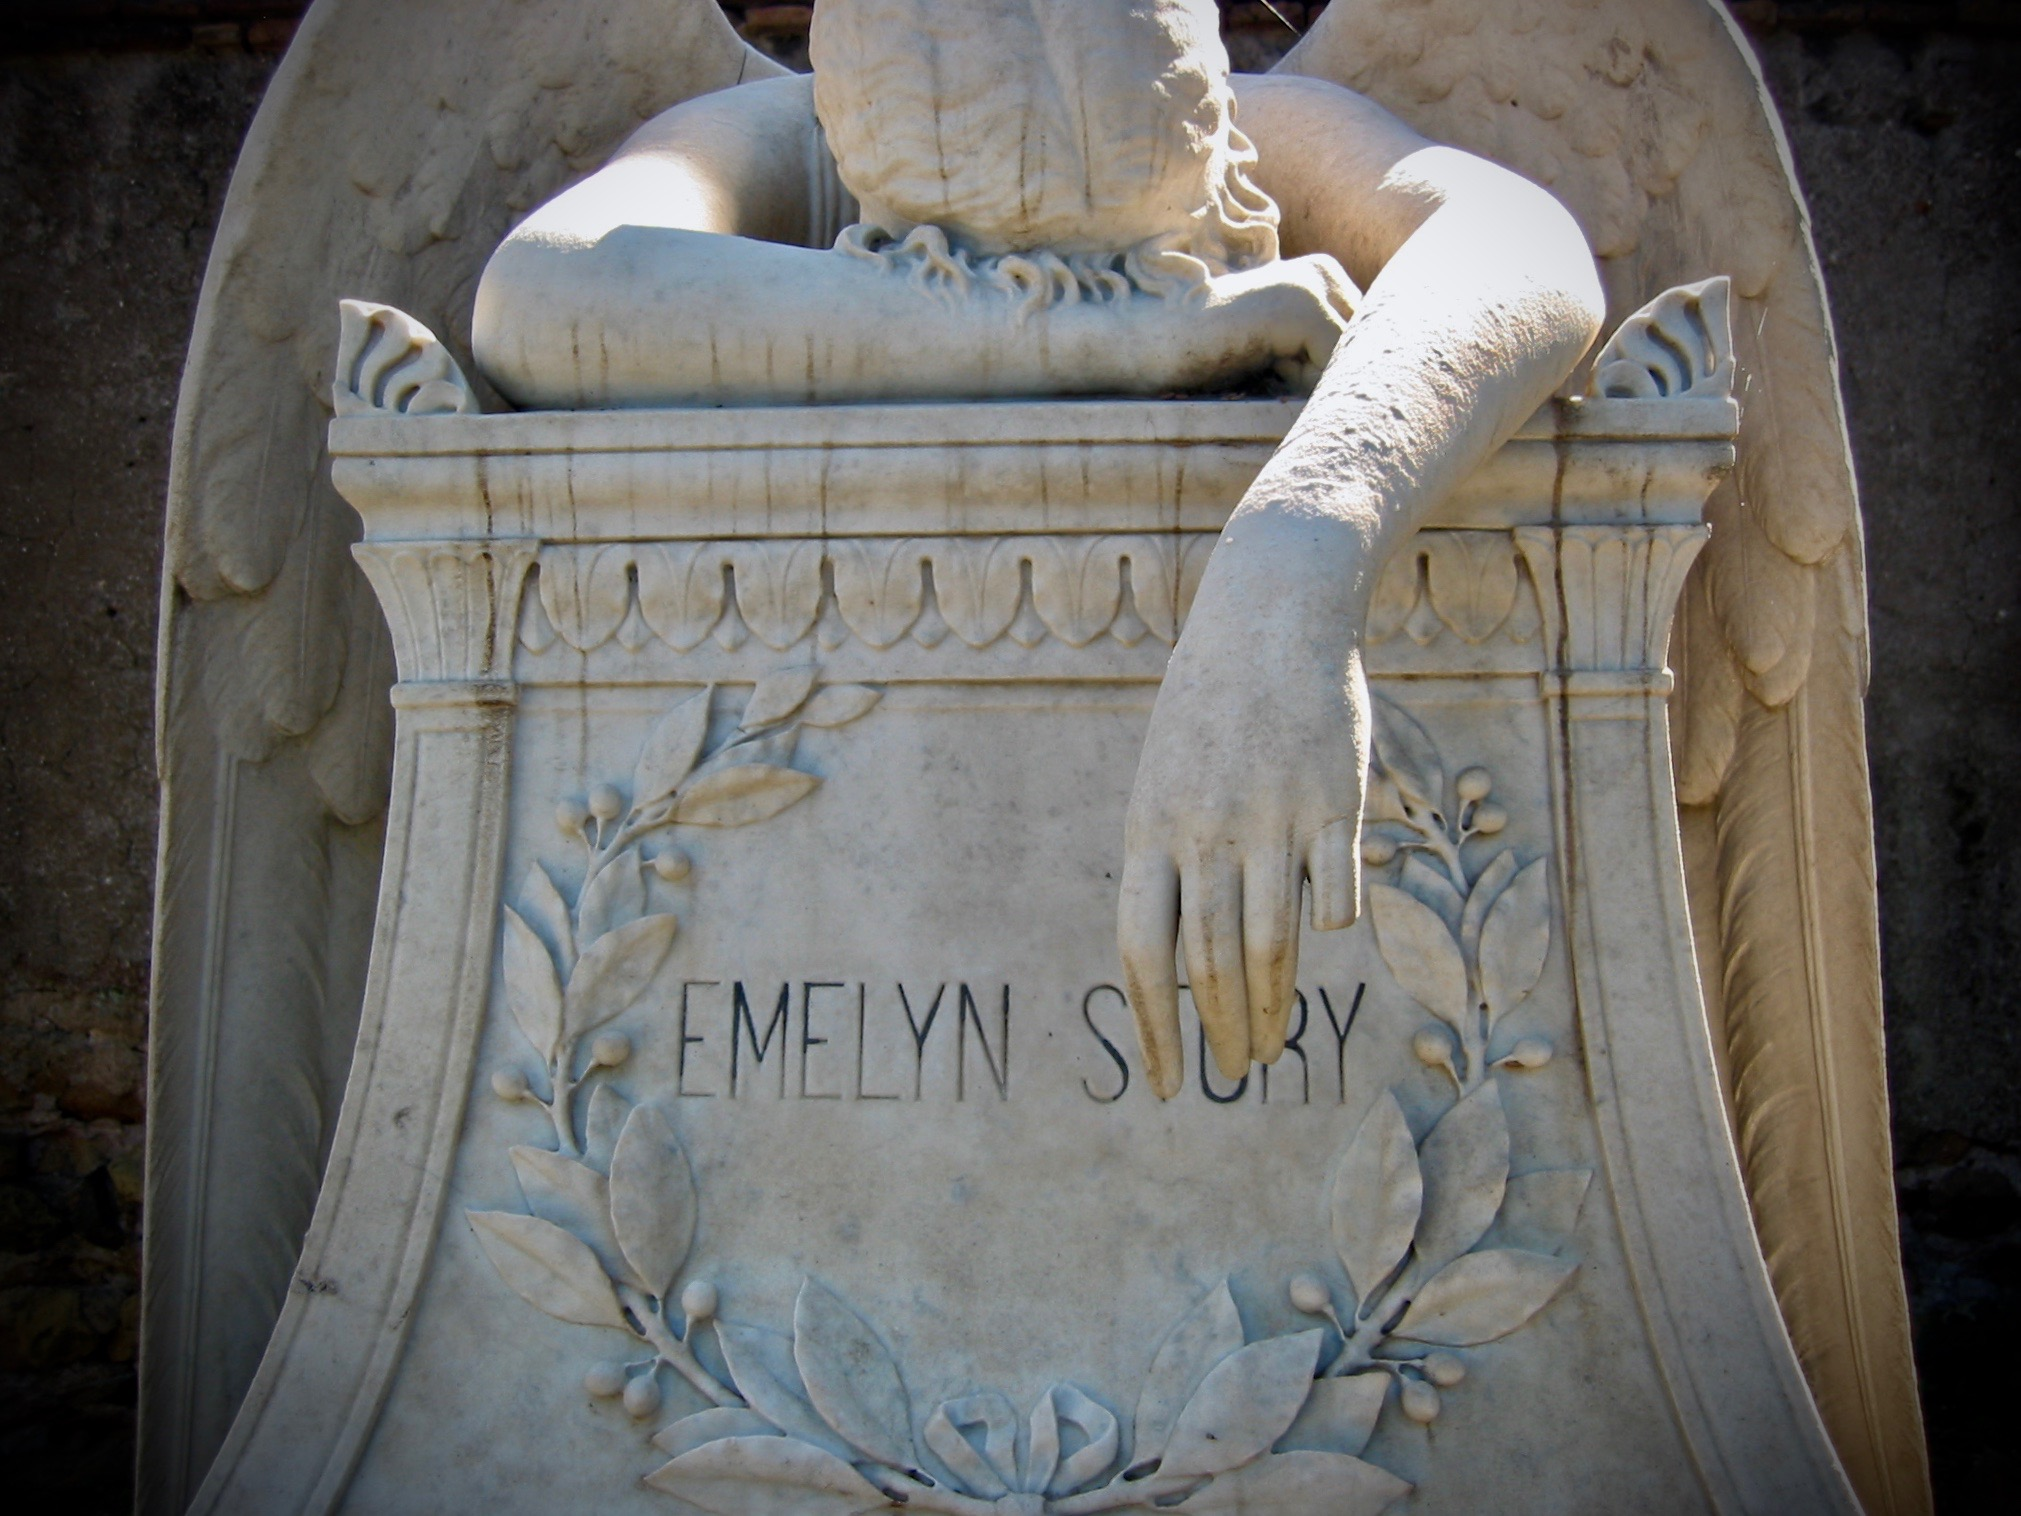 emelyn story sculpture by william wetmore story